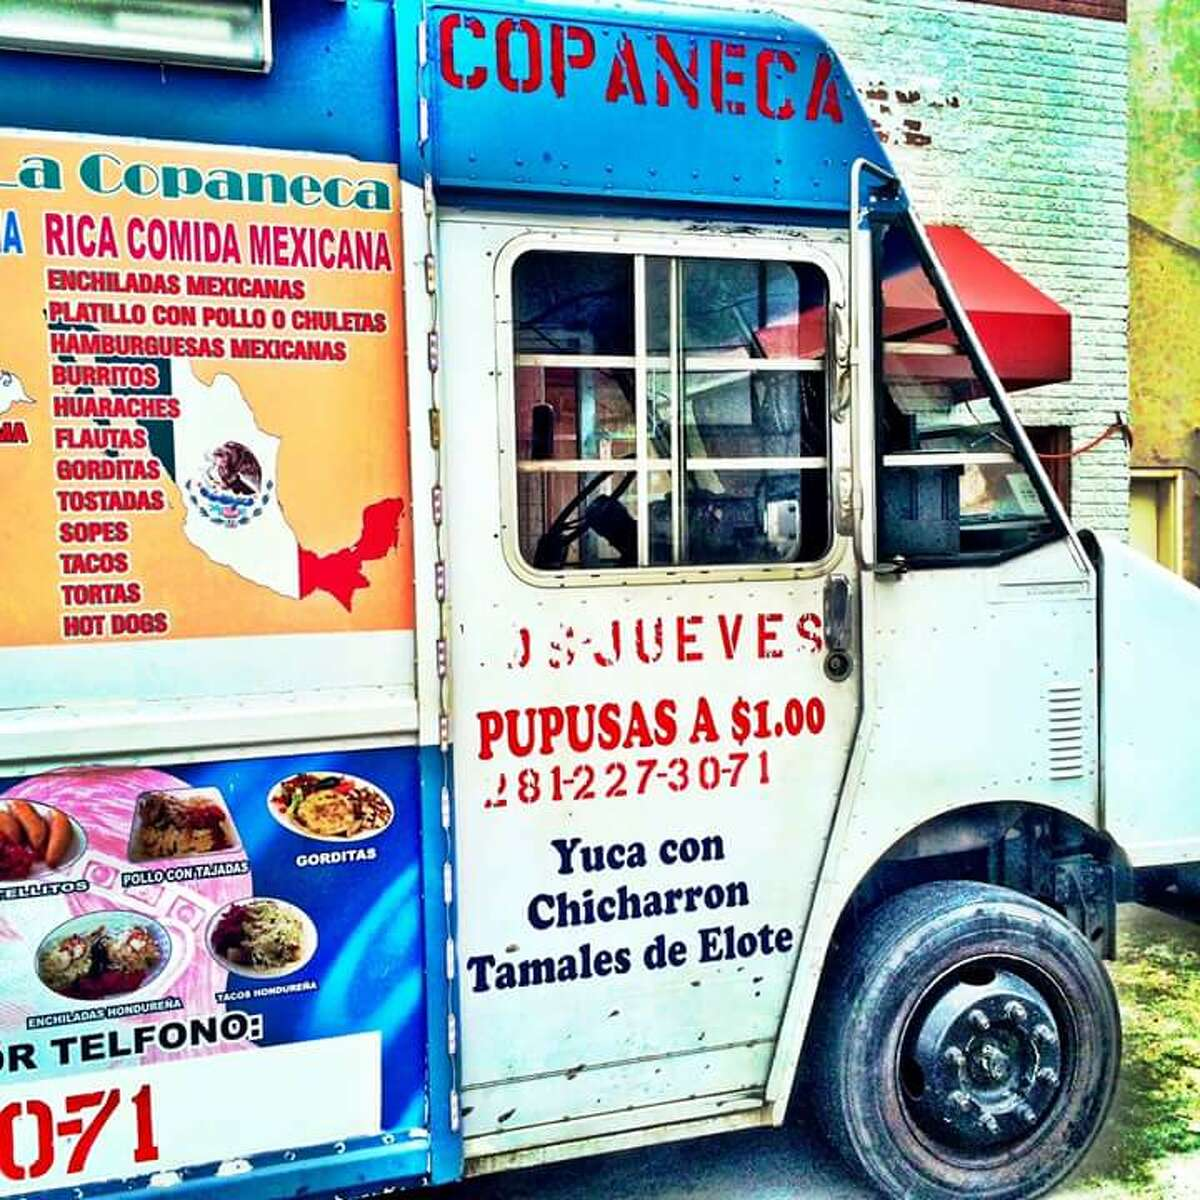 Go on a taco truck crawl Better to teach the young ones now that the best cheap food doesn't come from a drive-thru window. A kid that properly order three barbacoa tacos on corn tortillas is a kid raised right.